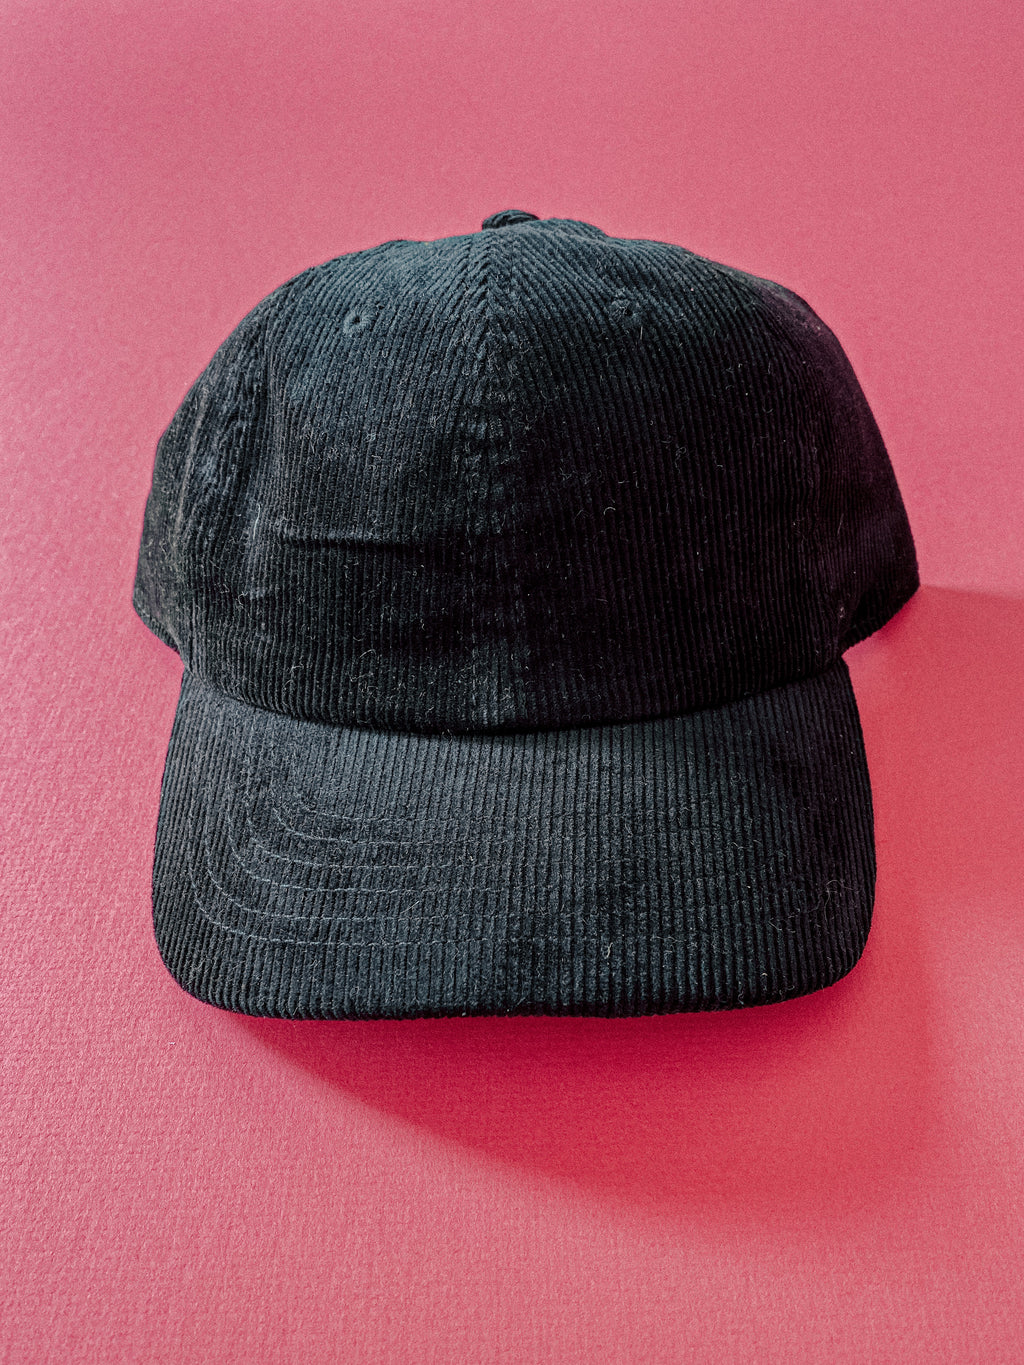 The Cora Hat: Black